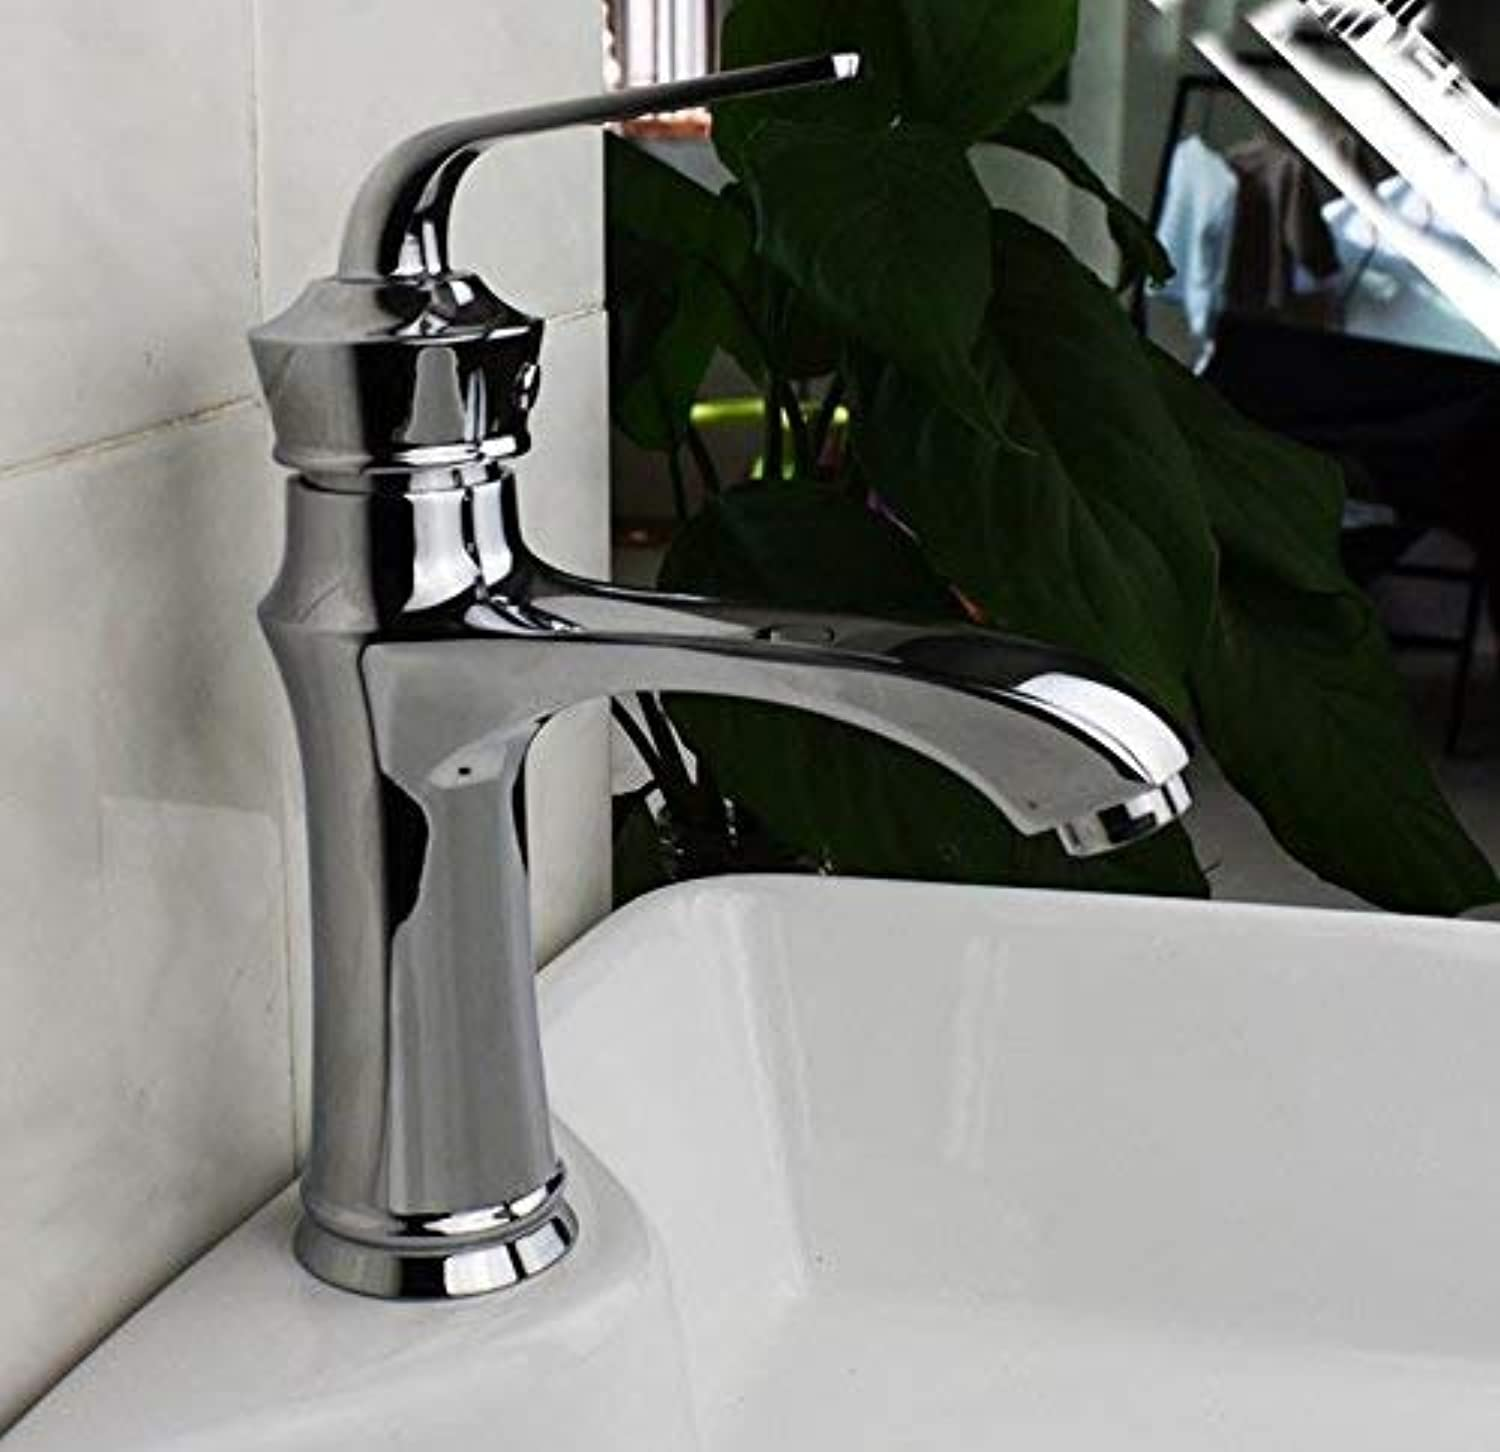 Bathroom Kitchen Sink Faucet,Basin Sink Mixer Tap Brass Single Hole Single Handle Hot and Cold Water.